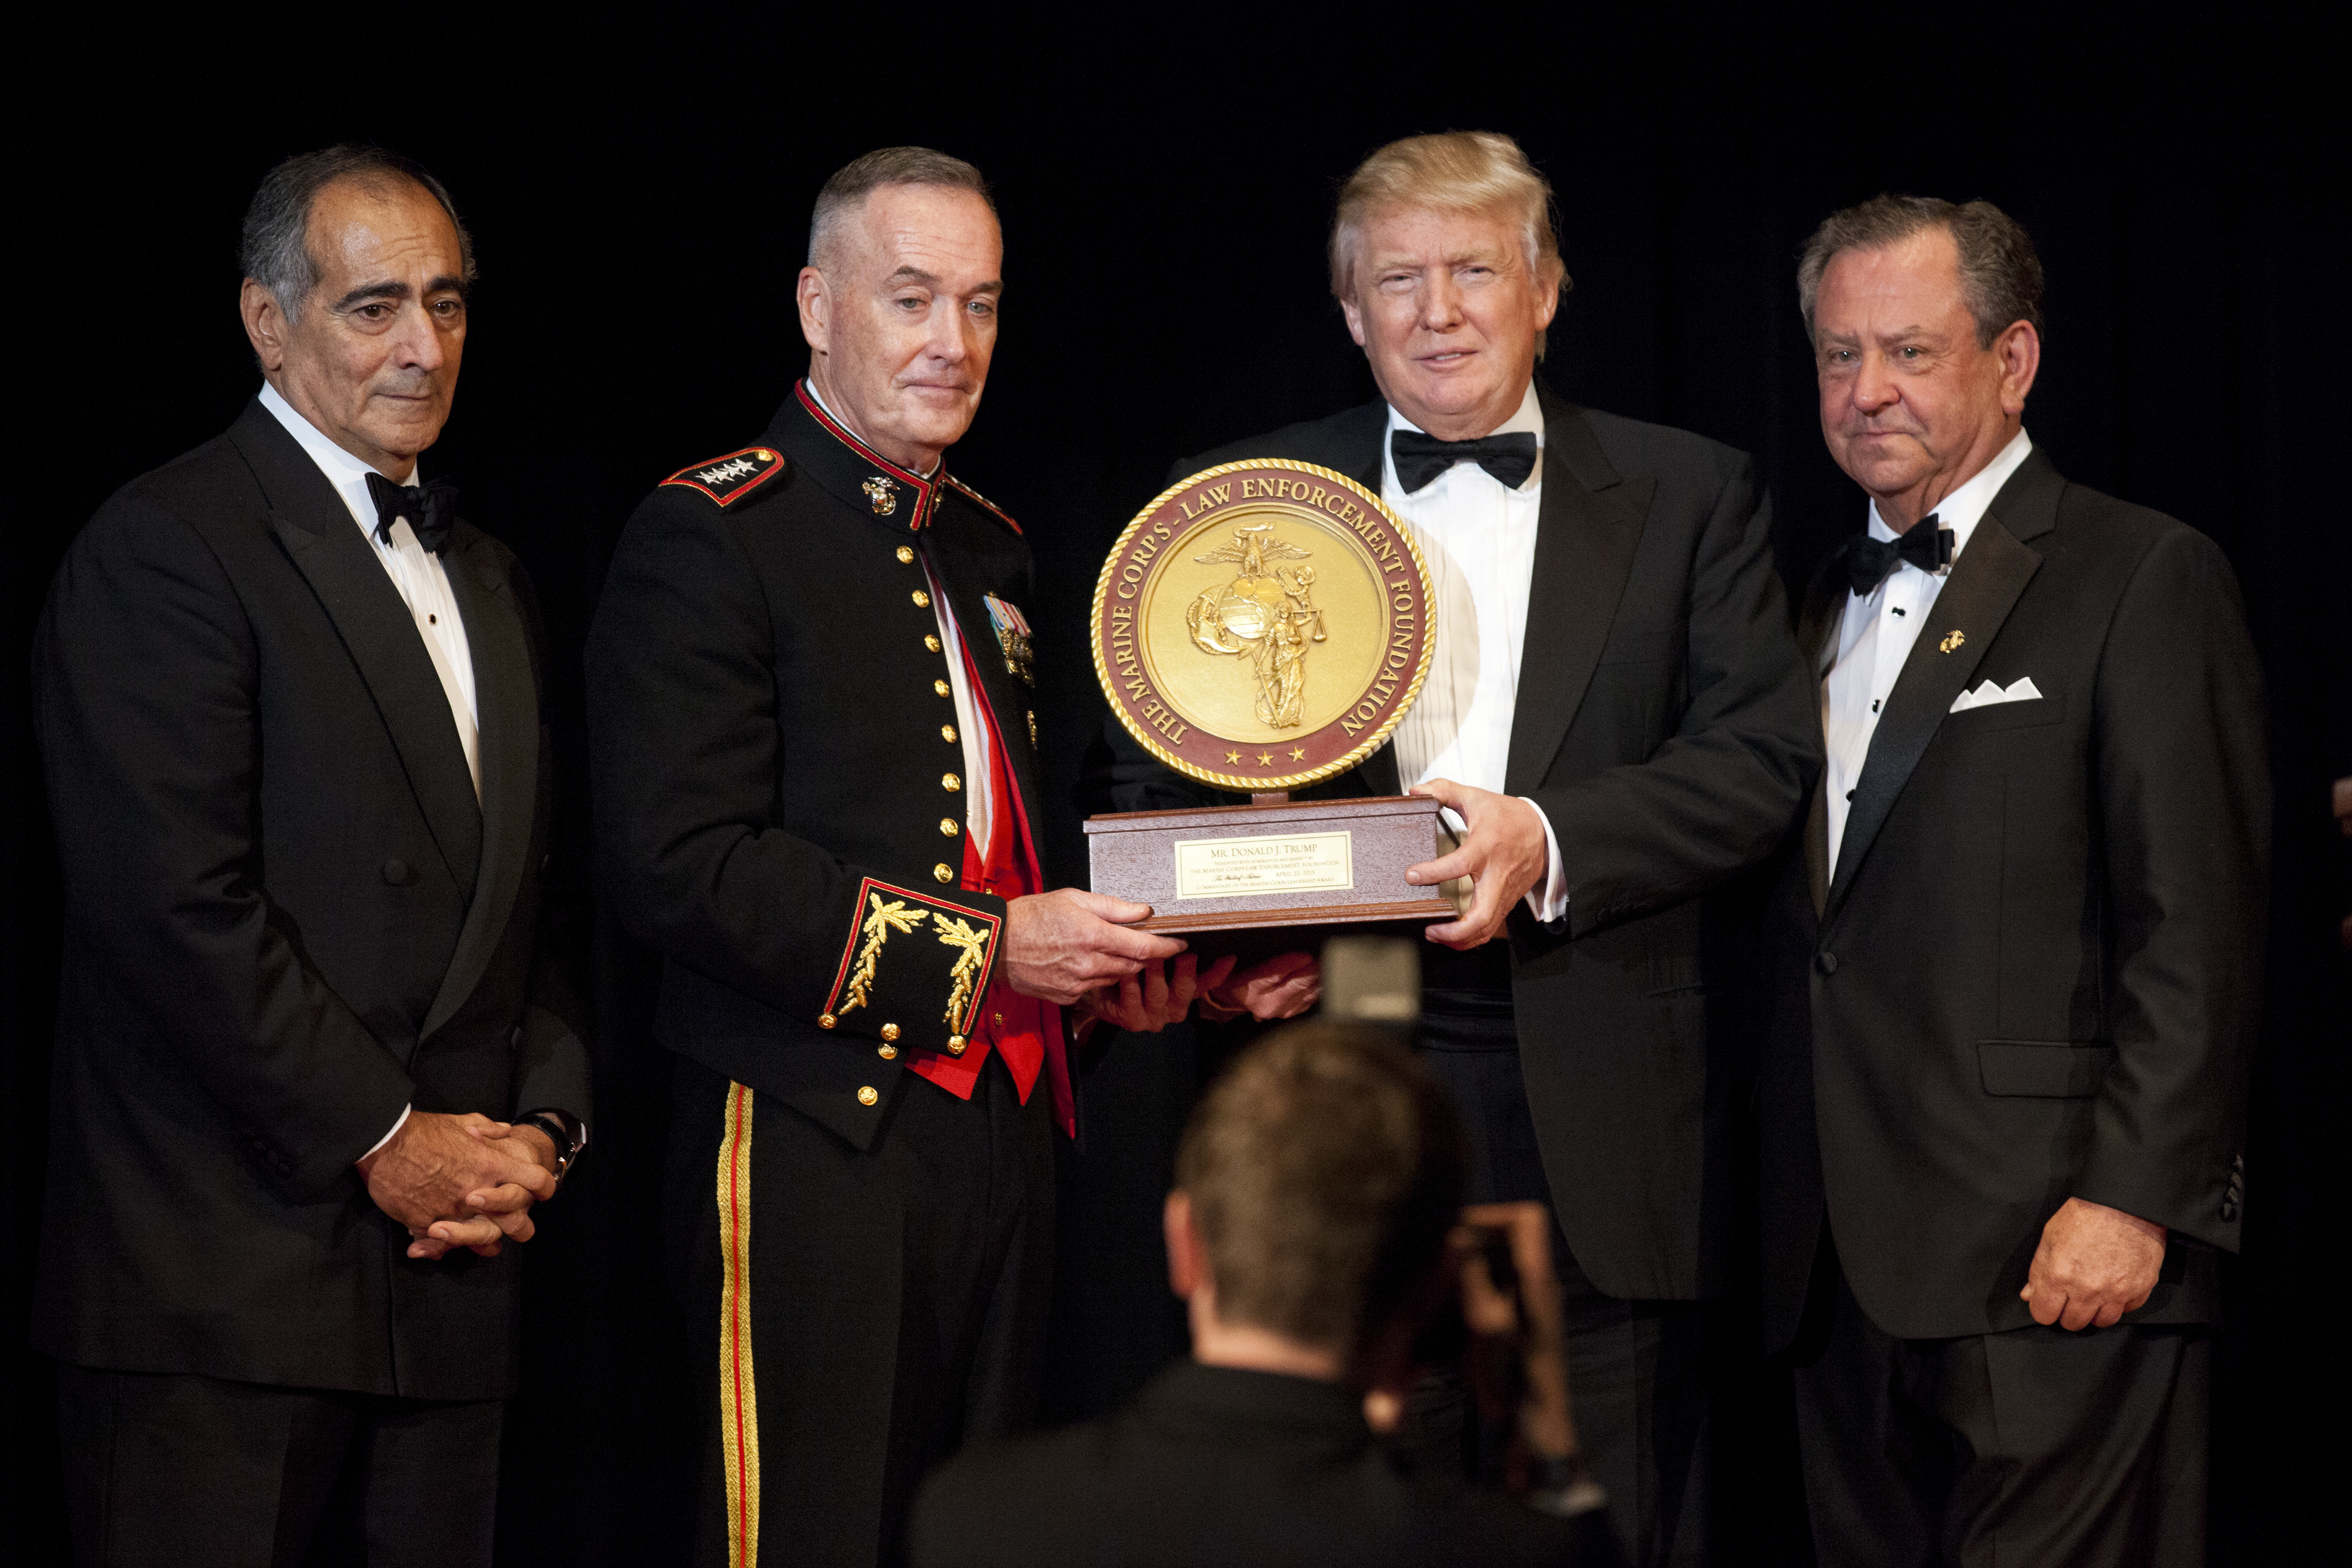 Trump receiving the 2015 Marine Corps–Law Enforcement Foundation's annual Leadership Award in recognition for his contributions to American military education programs.